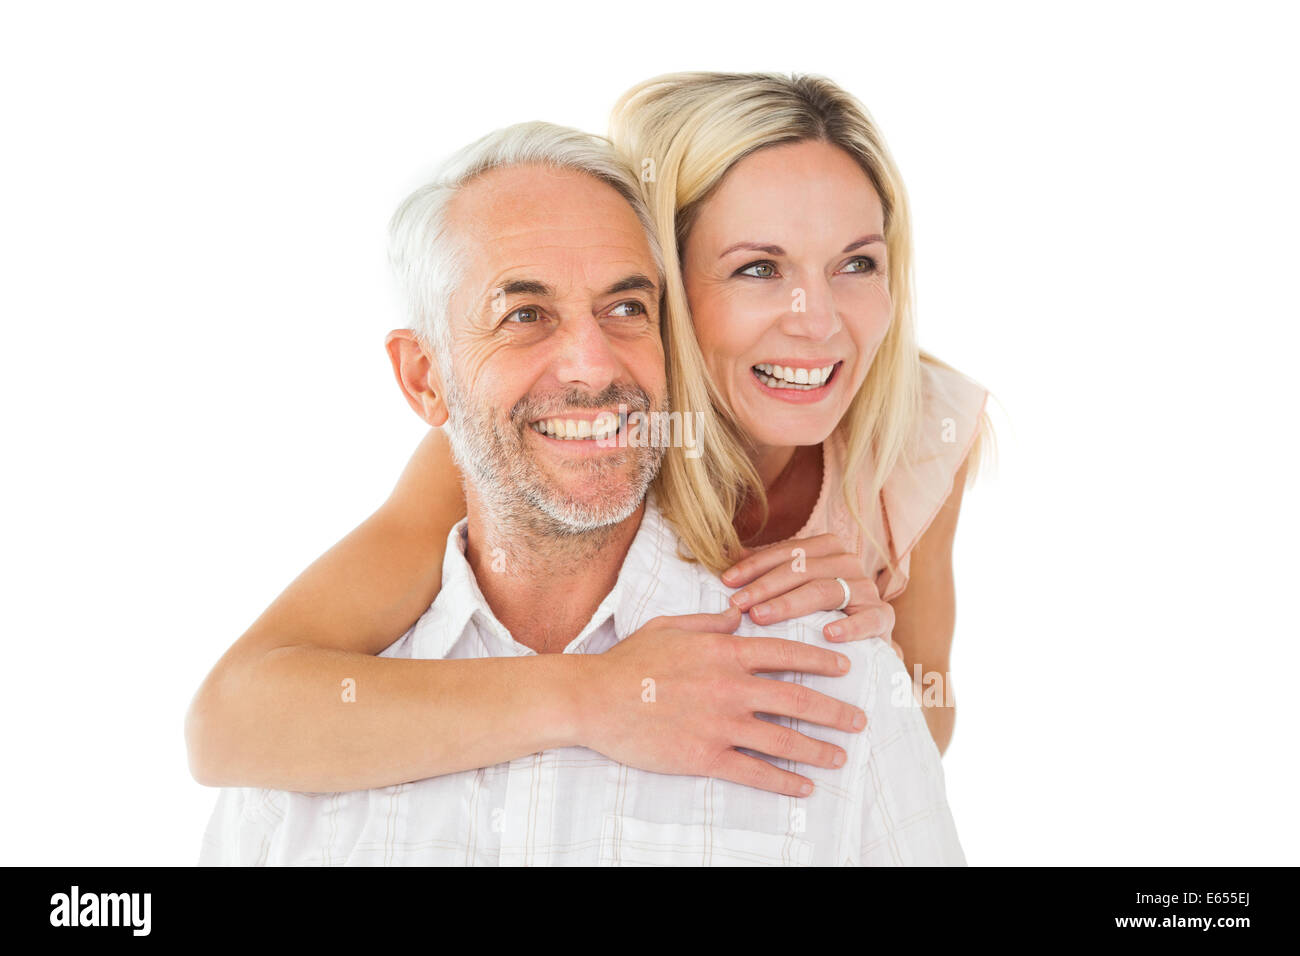 Happy man giving his partner a piggy back - Stock Image